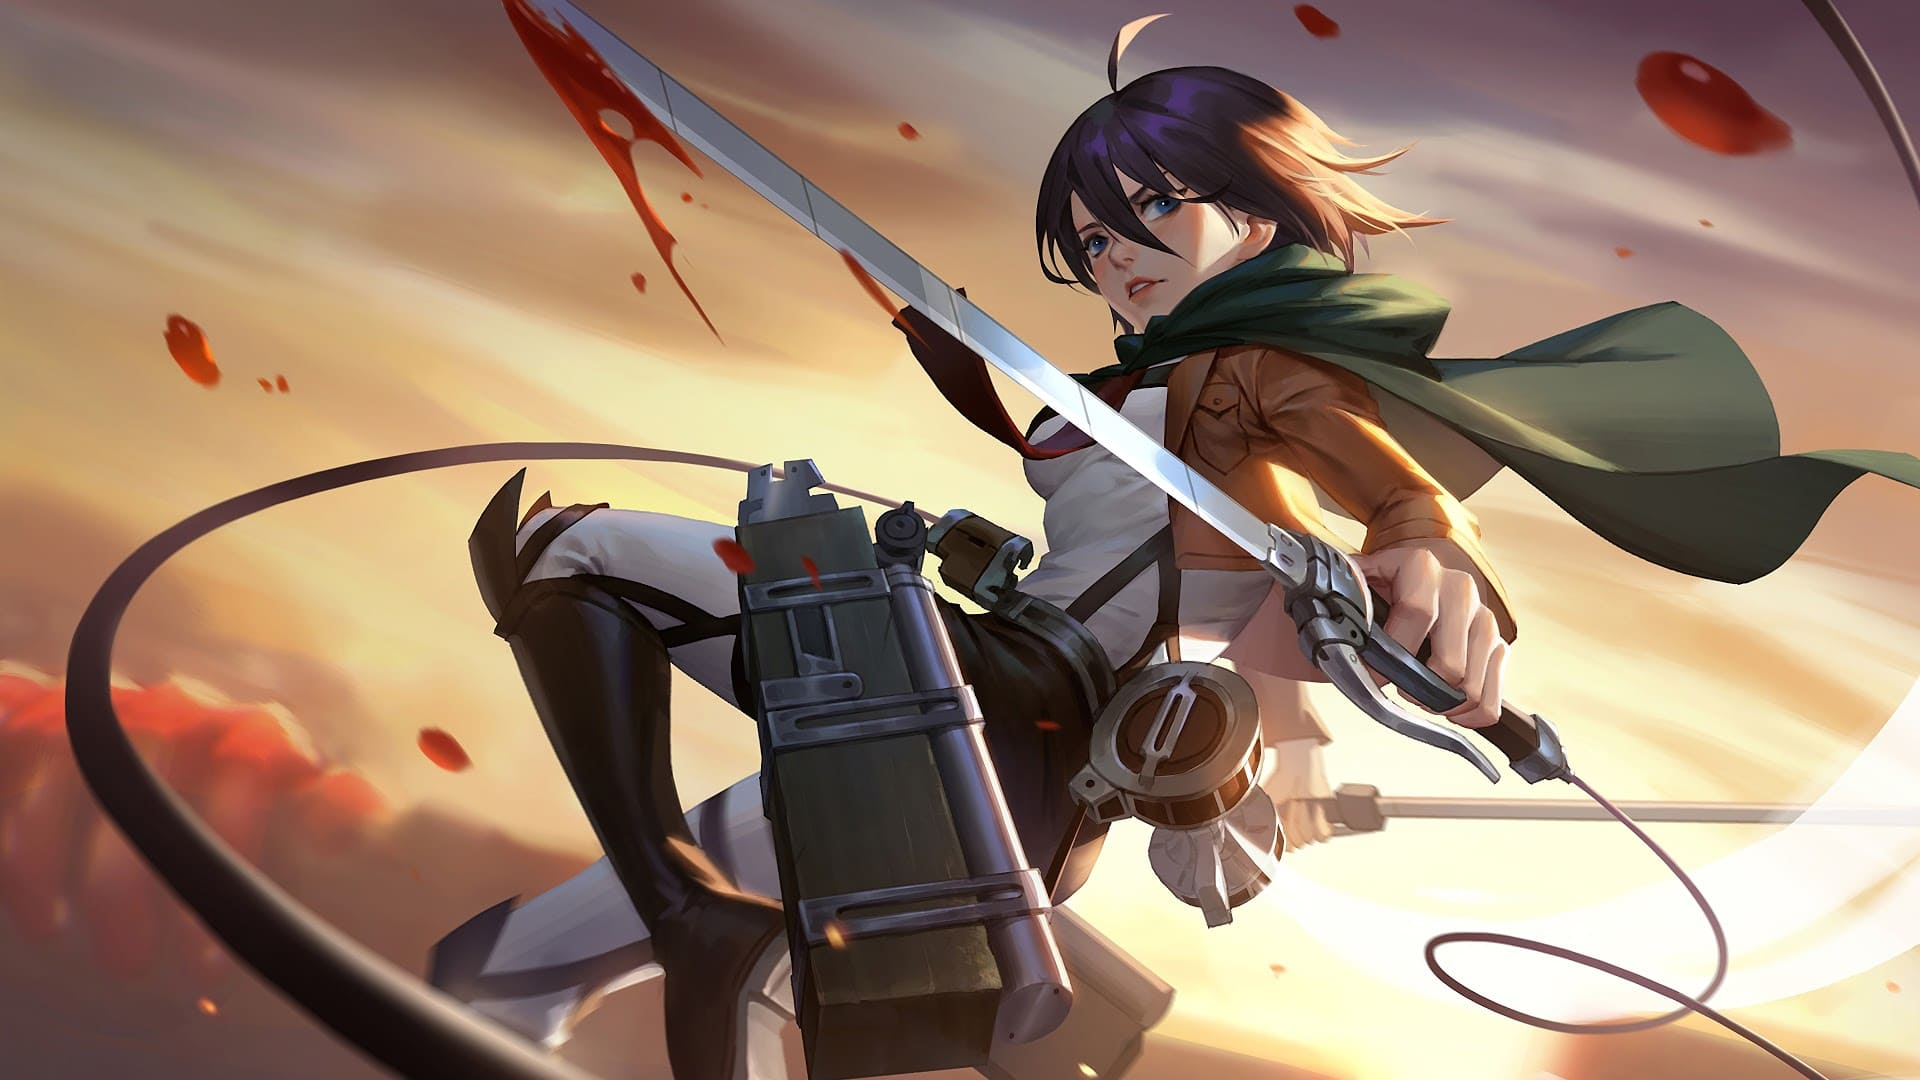 Top 95 Attack on Titan Wallpapers  4k + HD